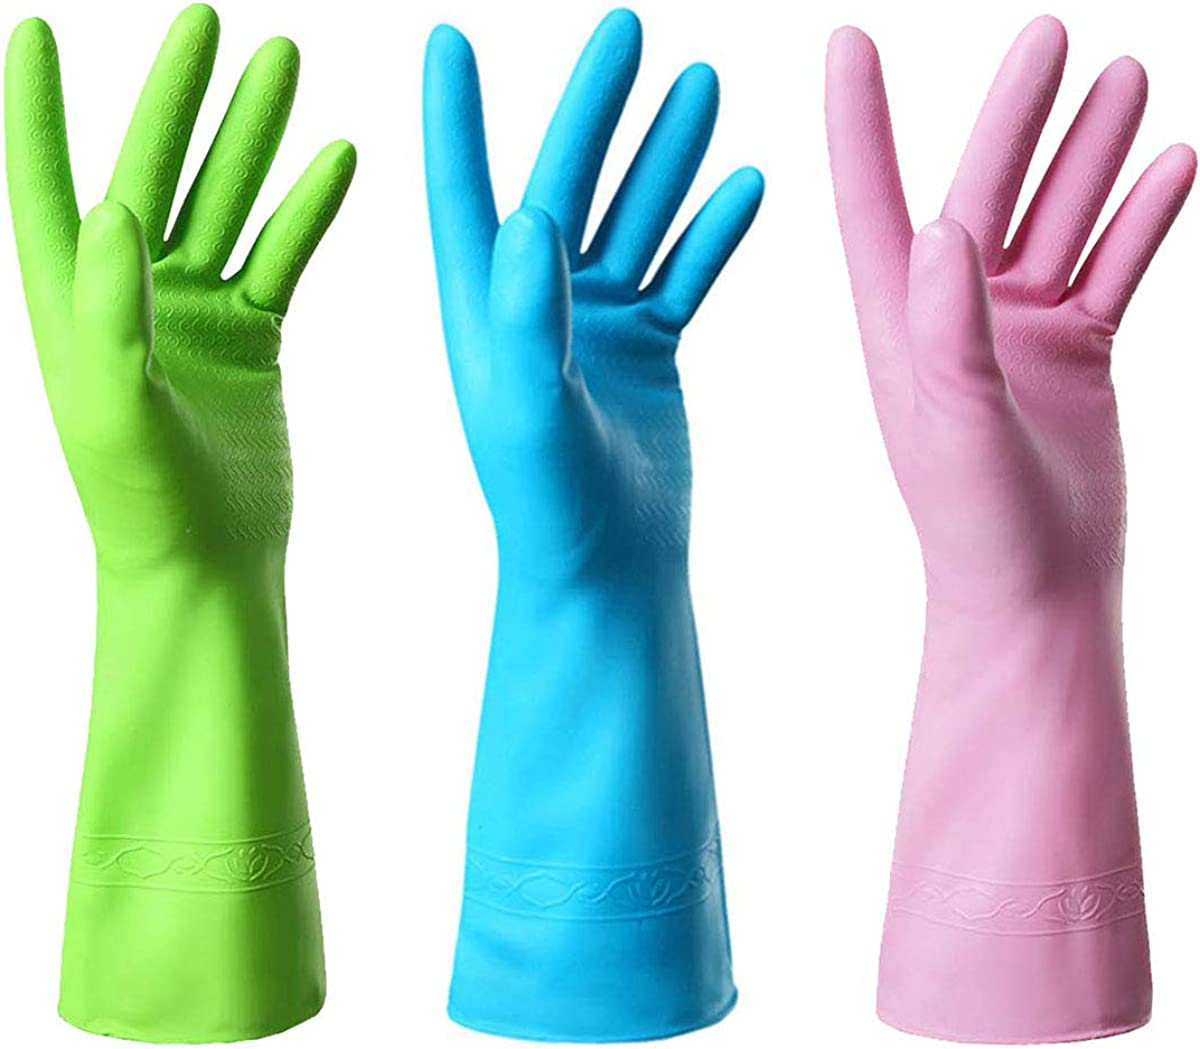 Mulfei Cleaning Gloves-Tear Proof Rubber Gloves-3 Pairs Kitchen Gloves Including Pink, Purple and Green (Large-Pink+Blue+Green)